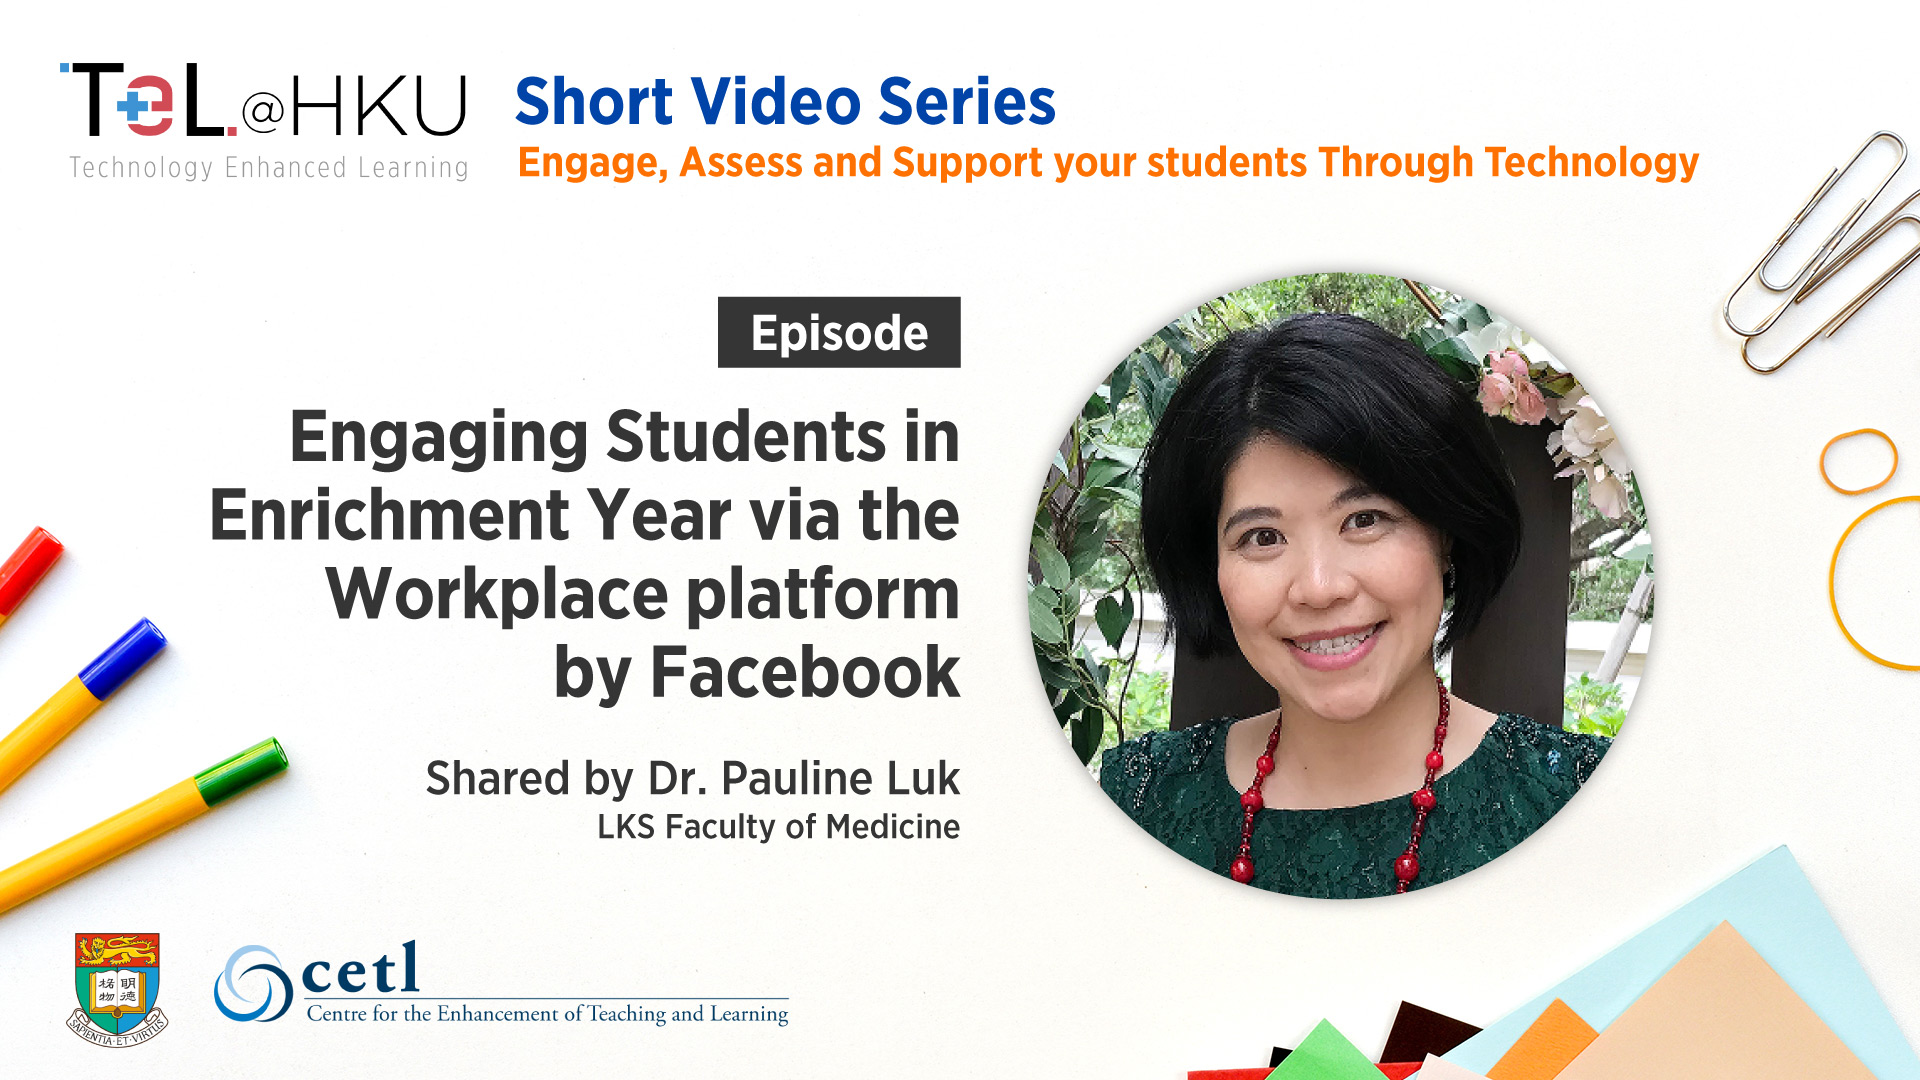 TeL@HKU Short Video Series – Engaging Students in Enrichment Year via the Workplace platform by Facebook shared by Dr. Pauline Luk